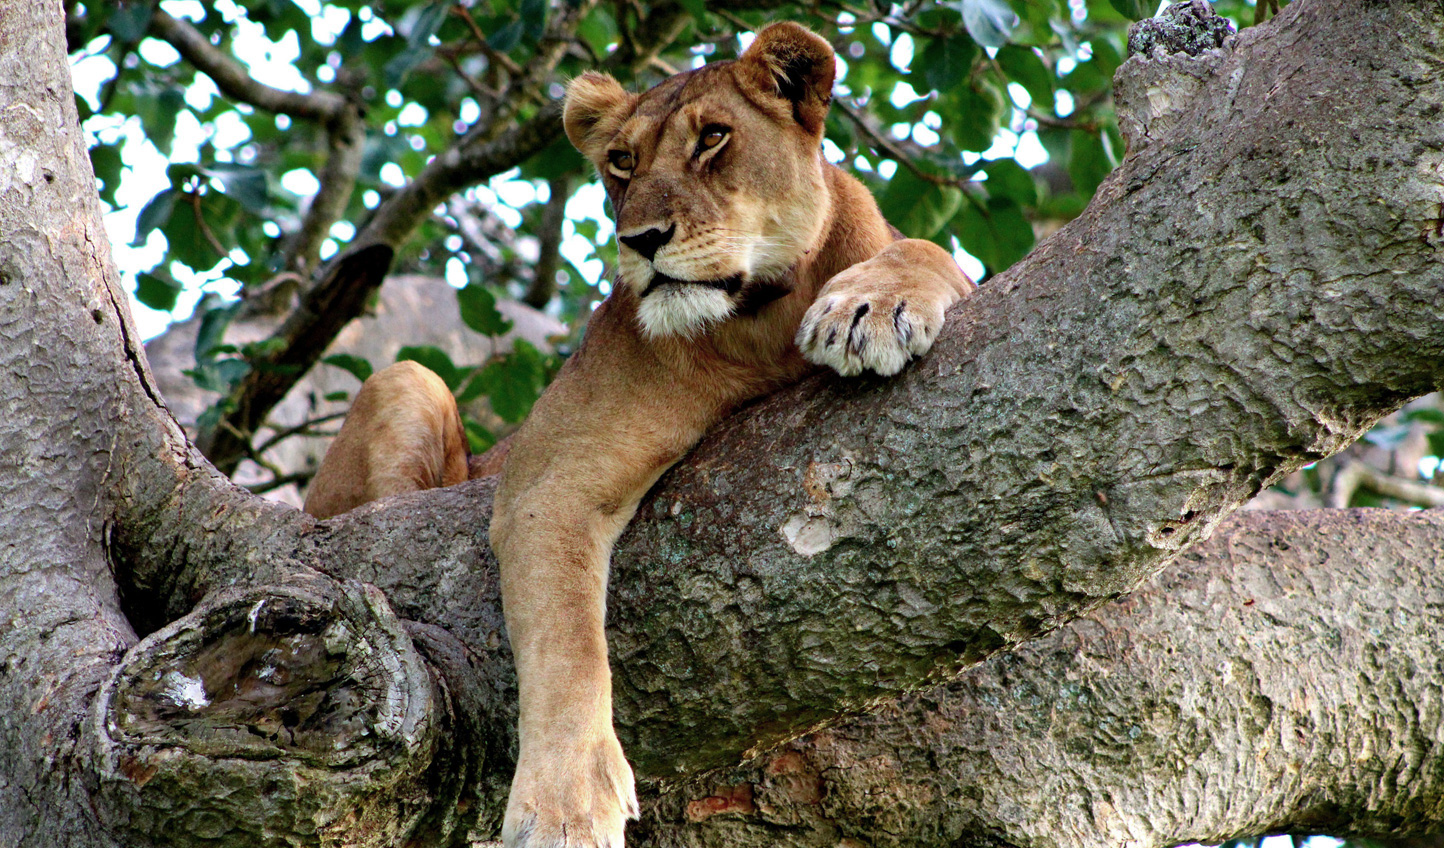 Catch sight of lions lazing in the treetops